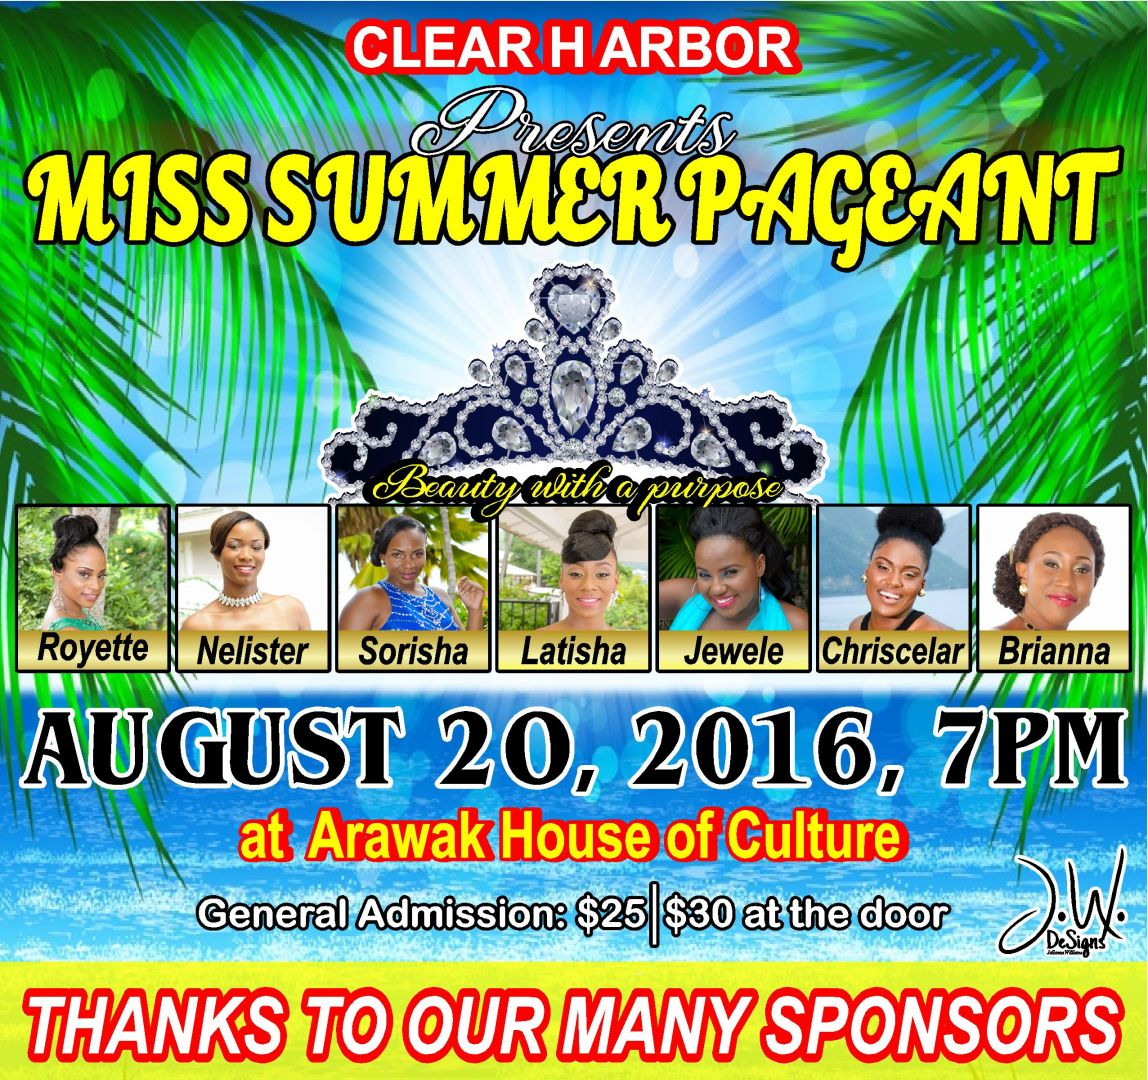 Clear Harbor Miss Summer Pageant 2016